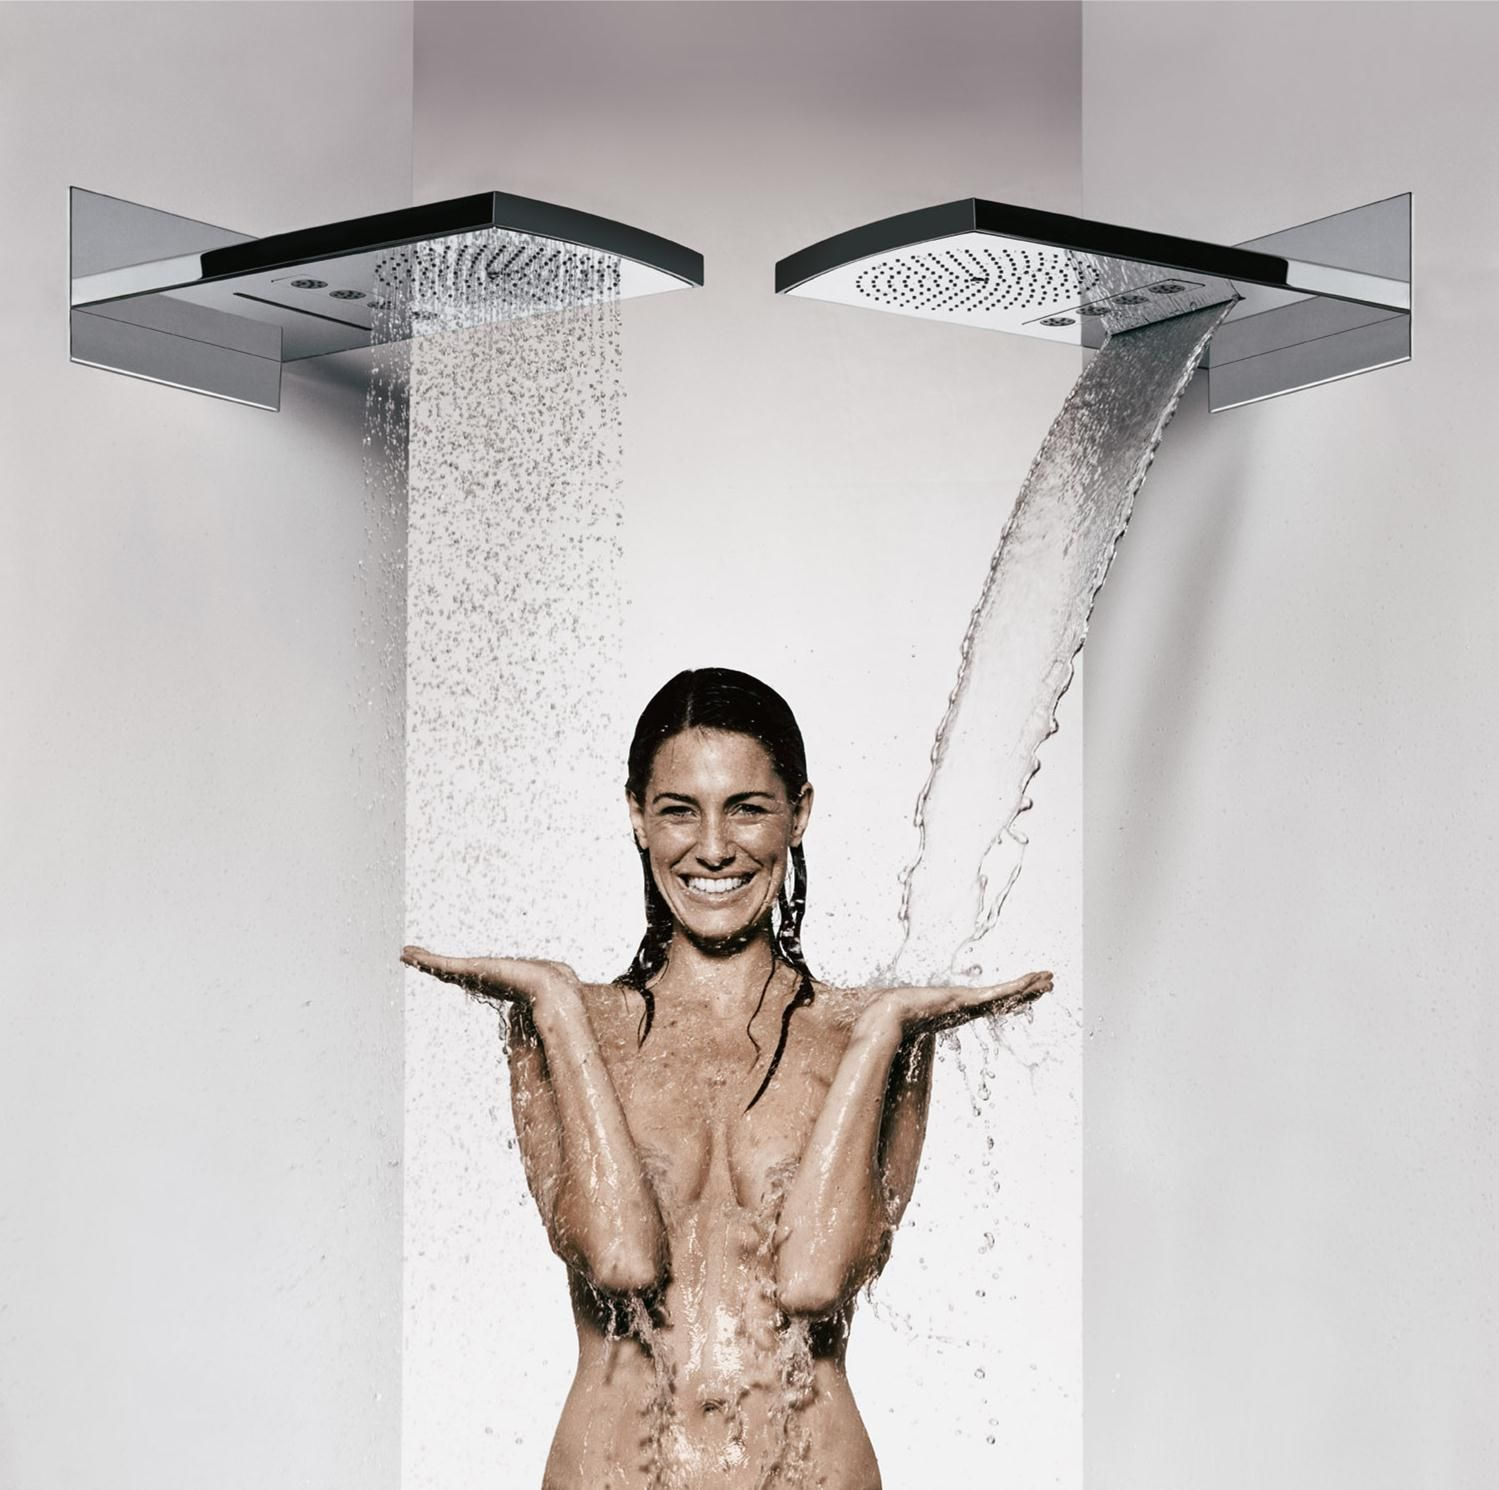 Alexia Dives Posted Raindance Rainfall Shower Head By Hansgrohe: Waterfall,  Hydromassage Via A Shower Of Aerated Raindrops, Or Both? Via Indesignlive  Head